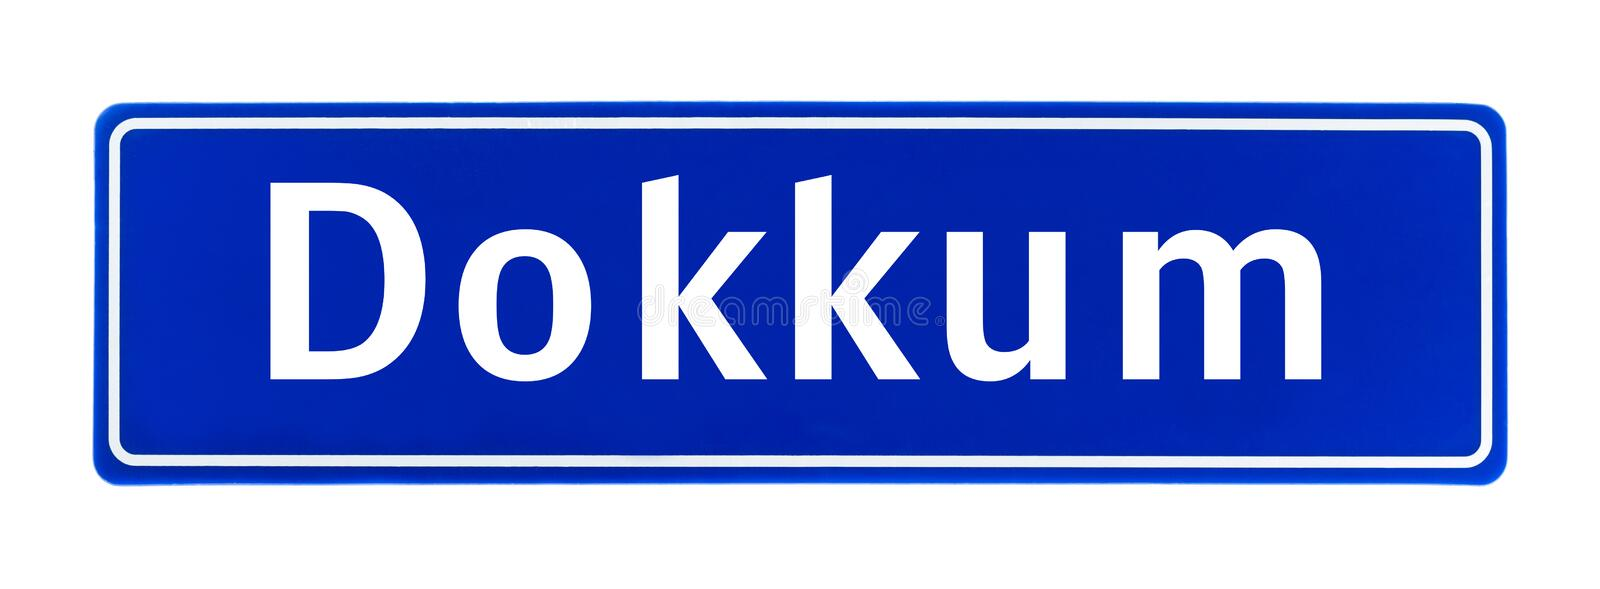 City limit sign of Dokkum, The Netherlands. Isolated on a white background stock images